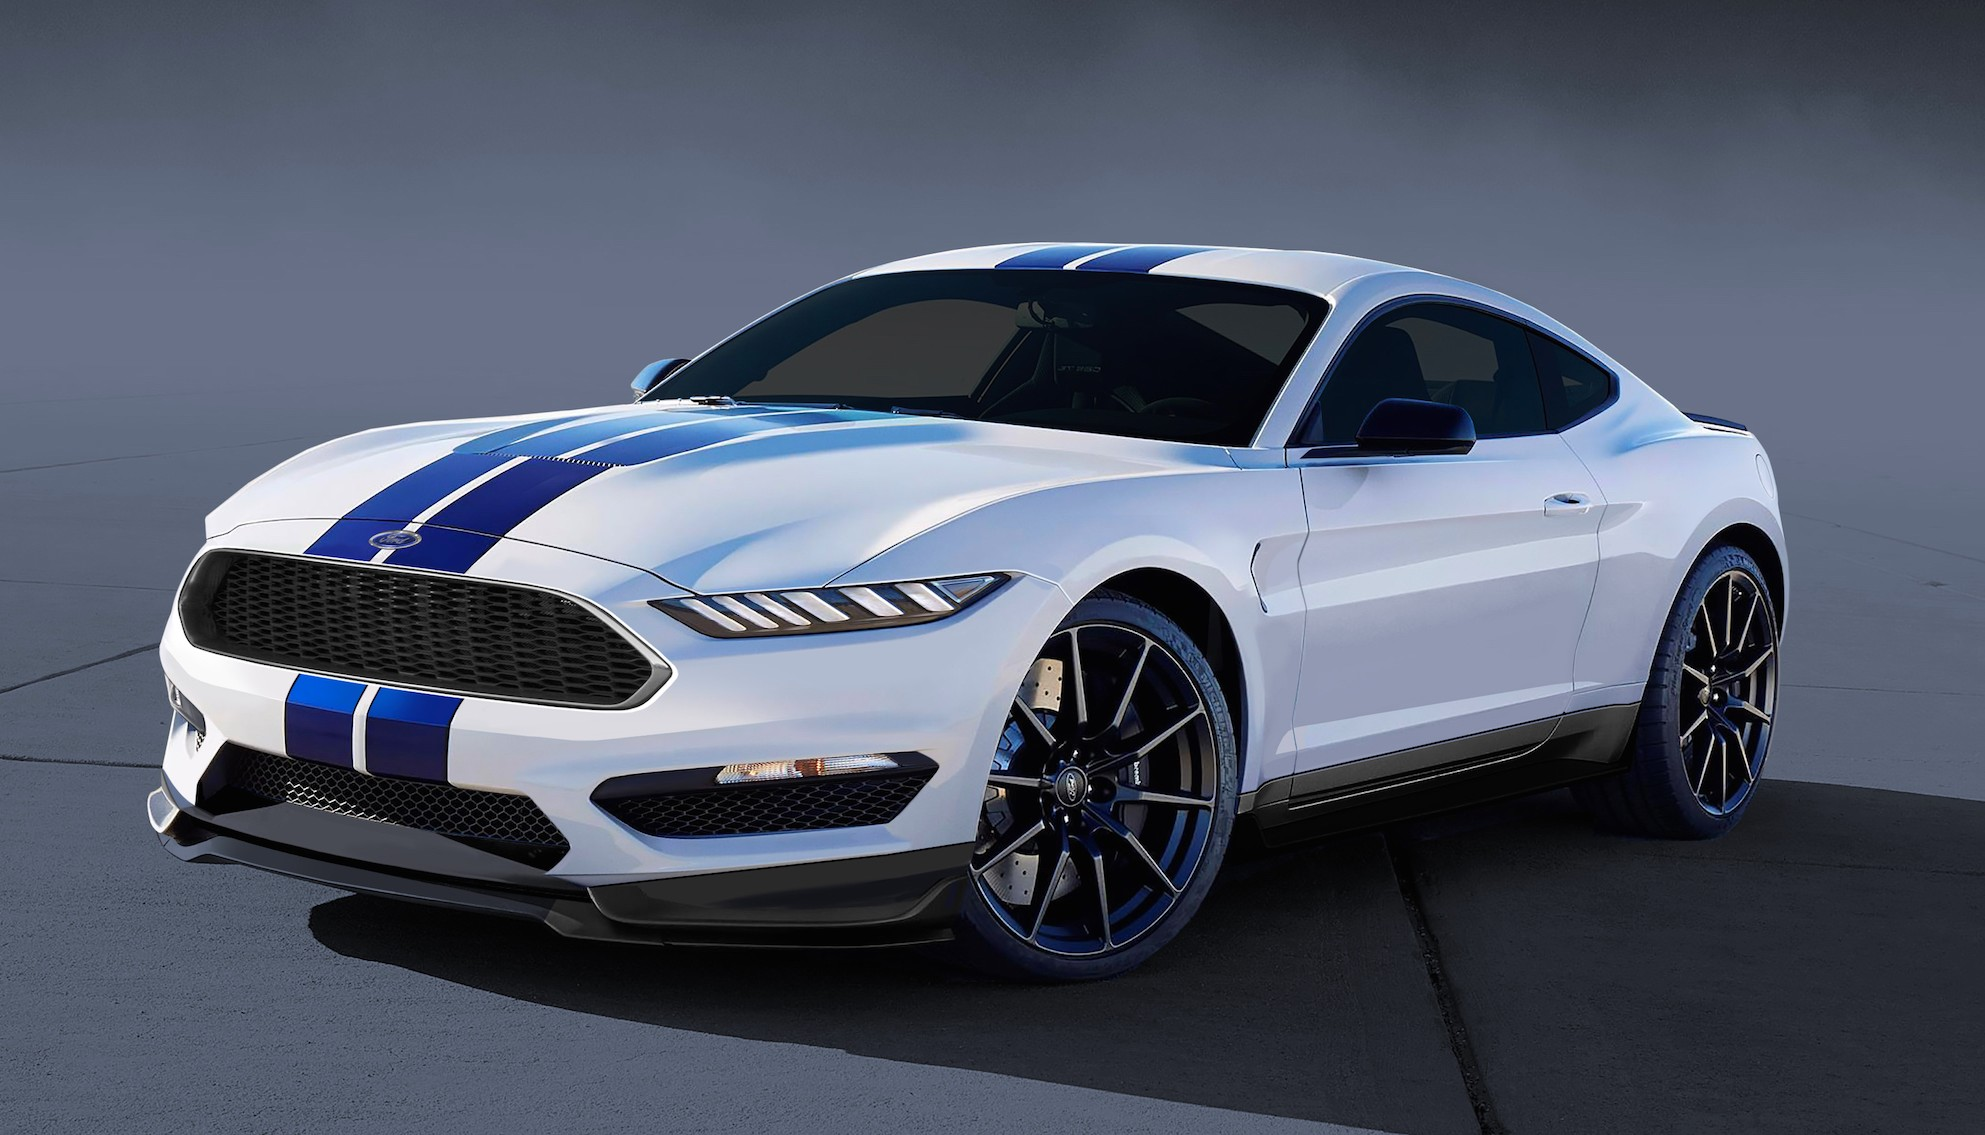 37 New 2020 Mustang Shelby Gt350 Configurations